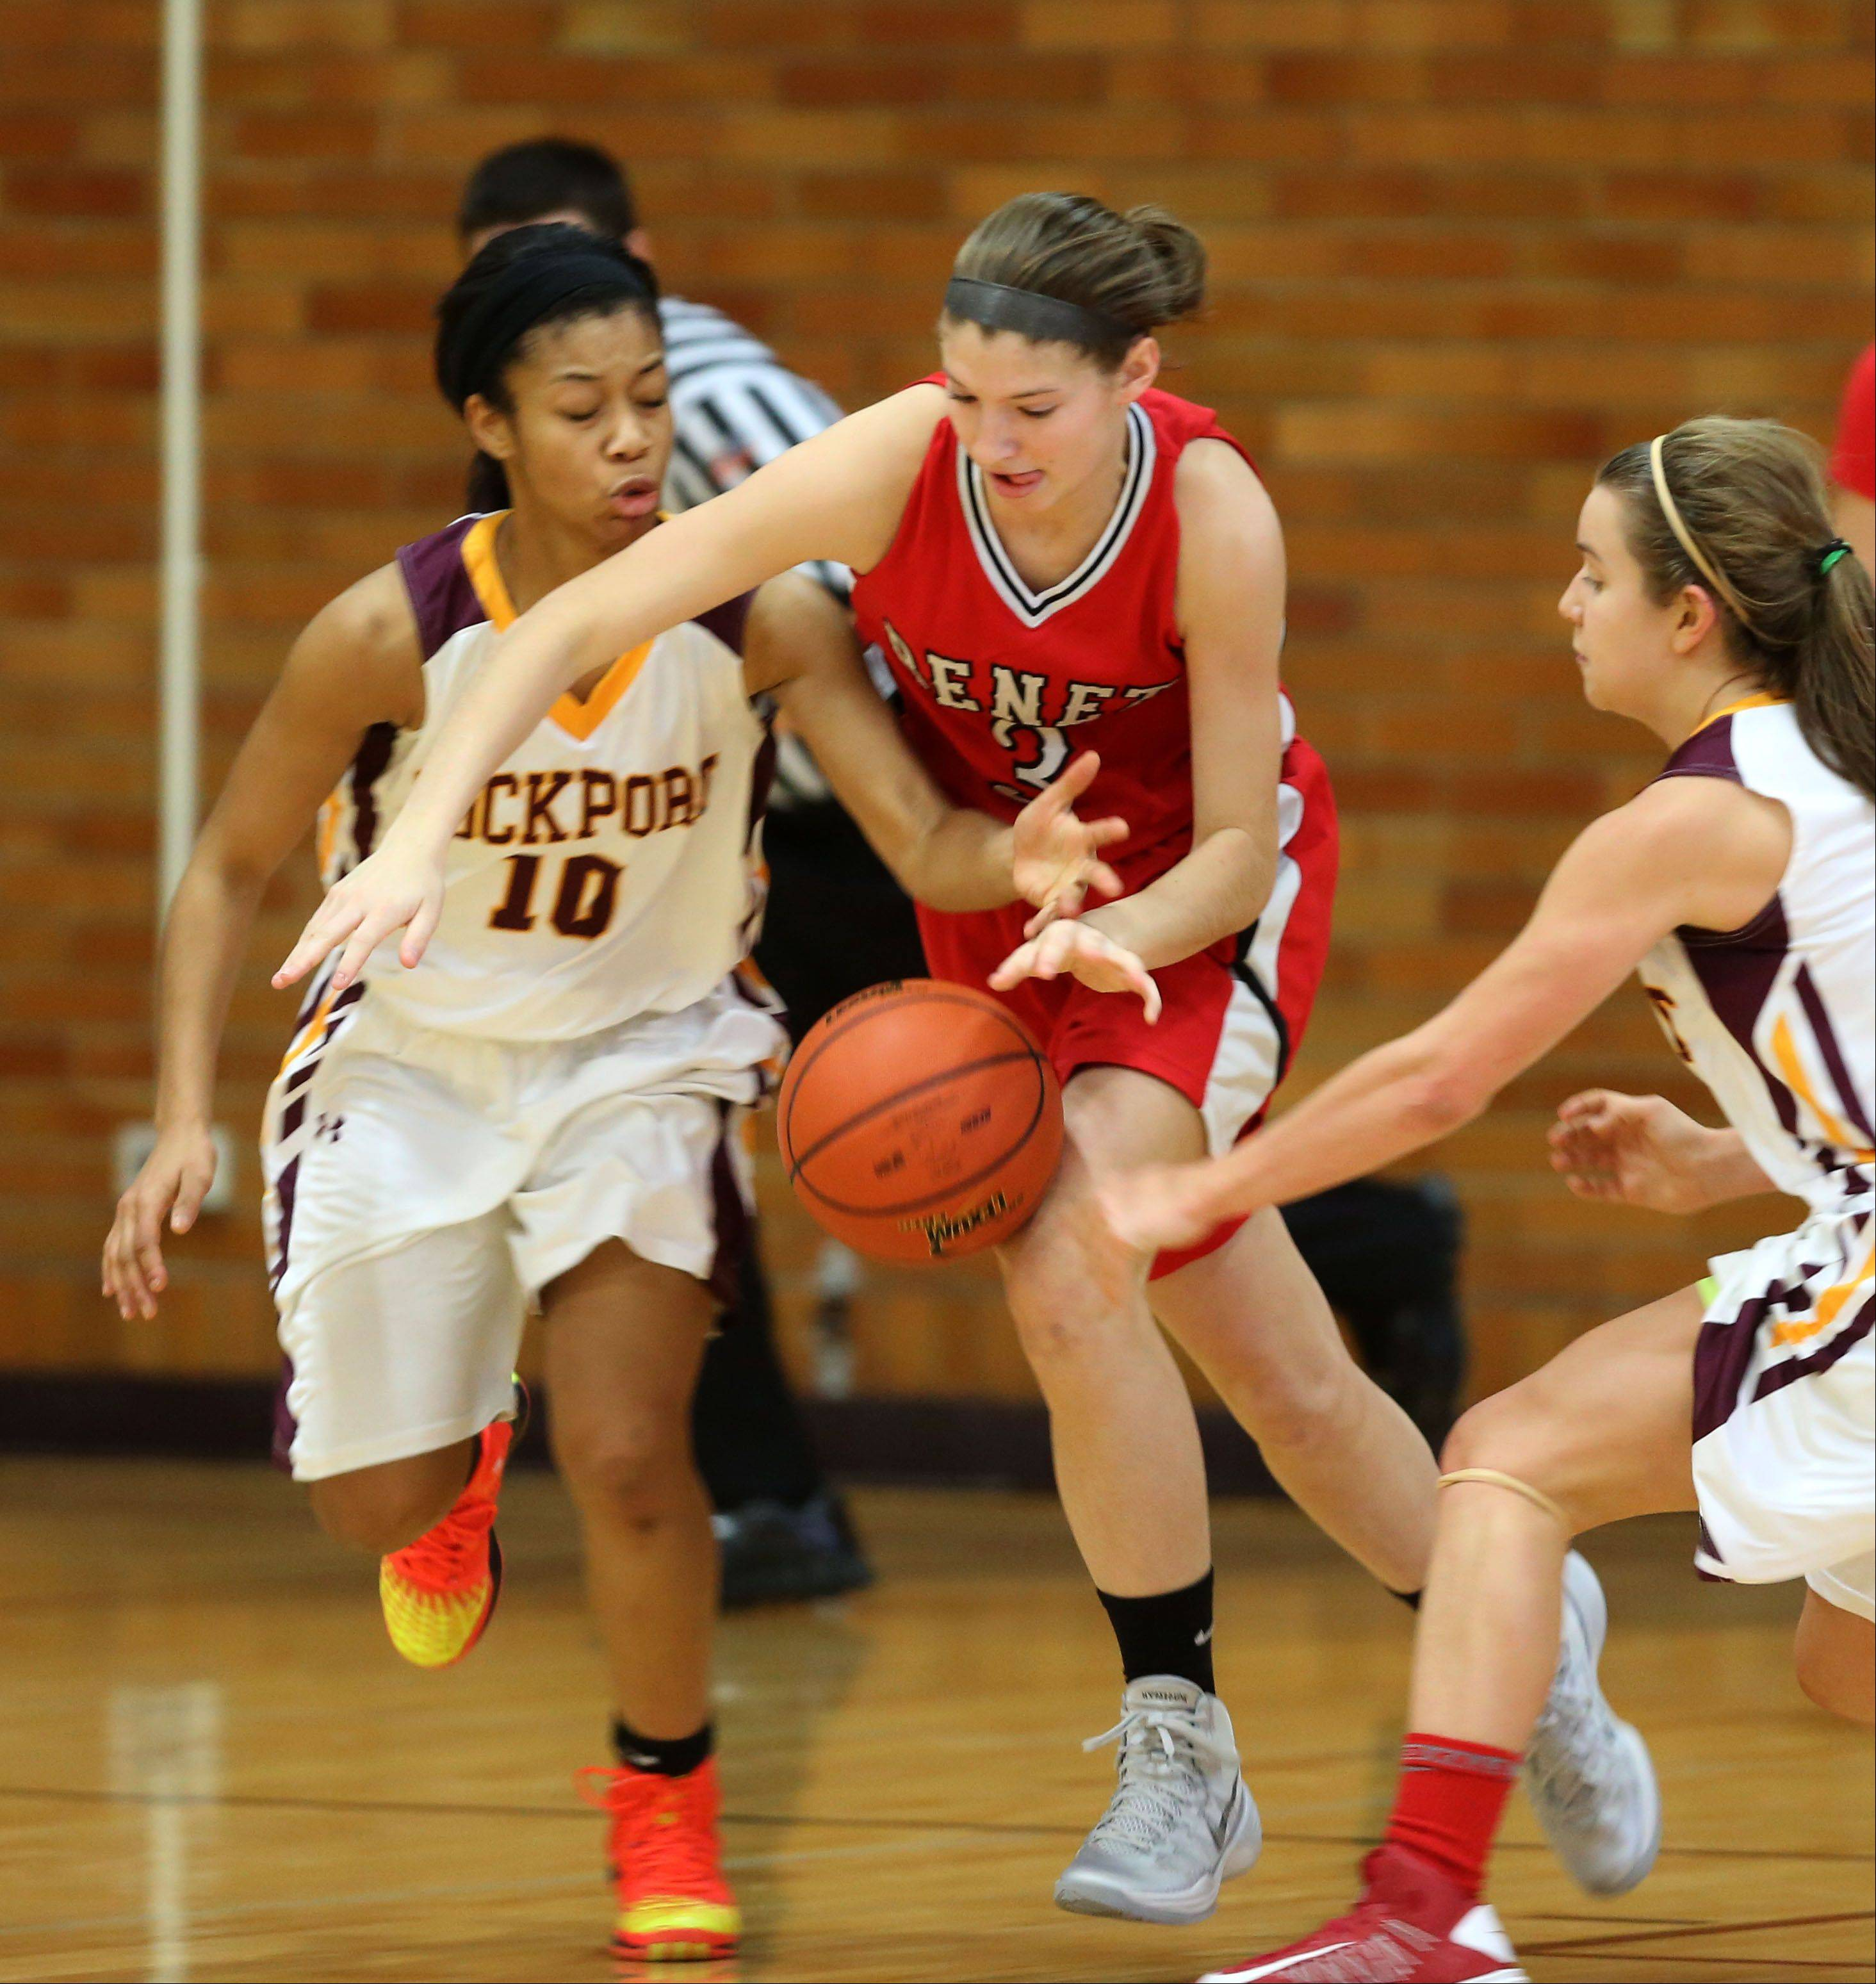 Benet's Emma Hlavin, center, moves up court past Lockport's Naomi Mayes, left, during girls basketball action.